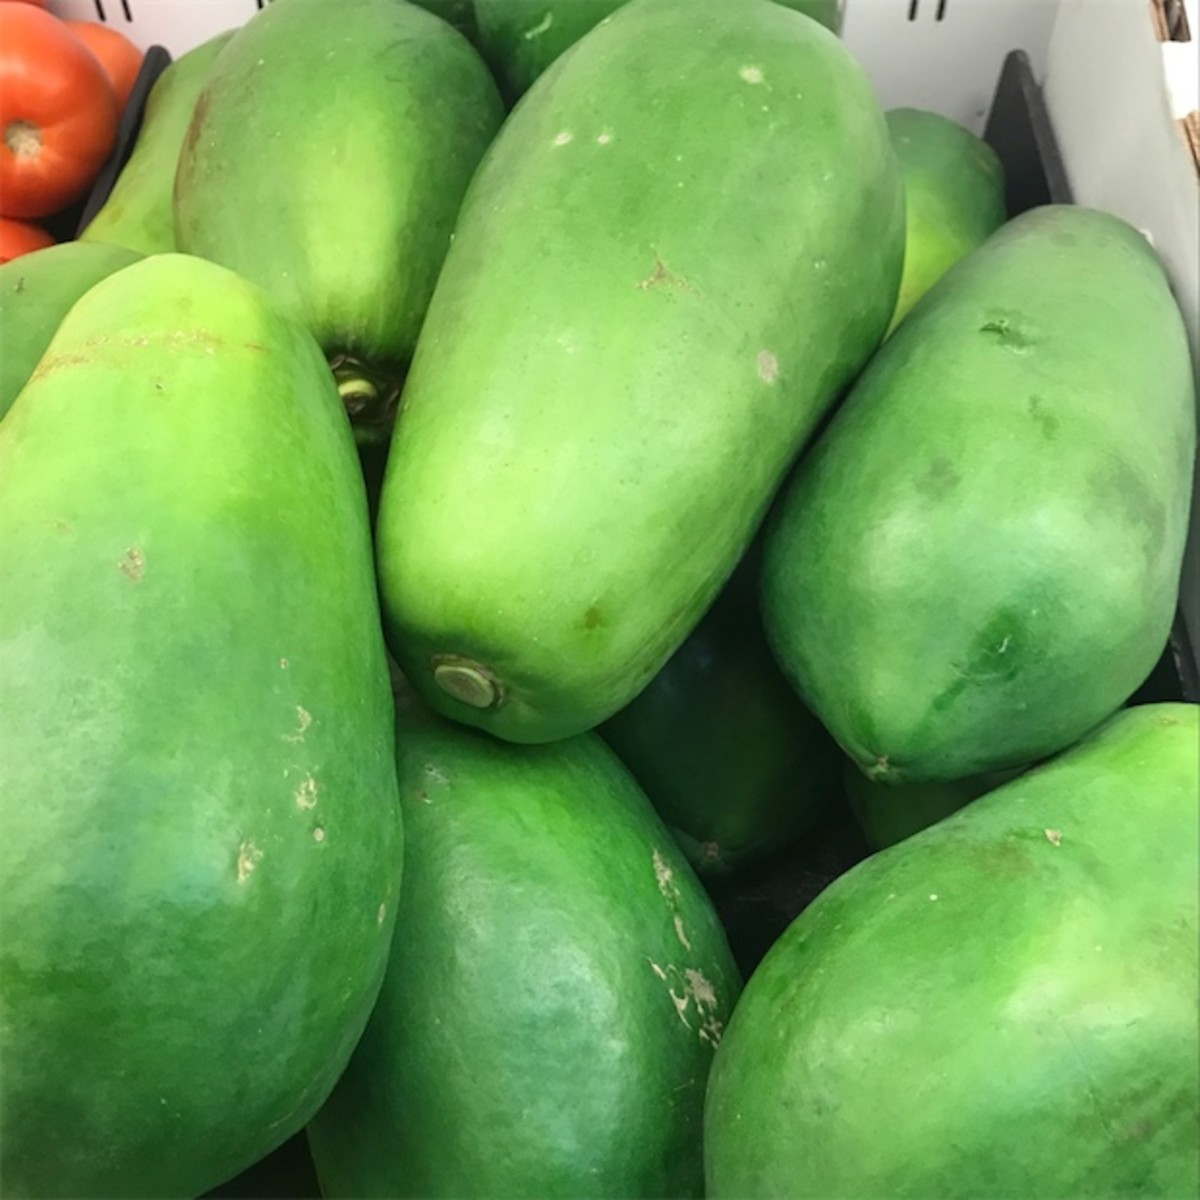 This is what green papayas look like.